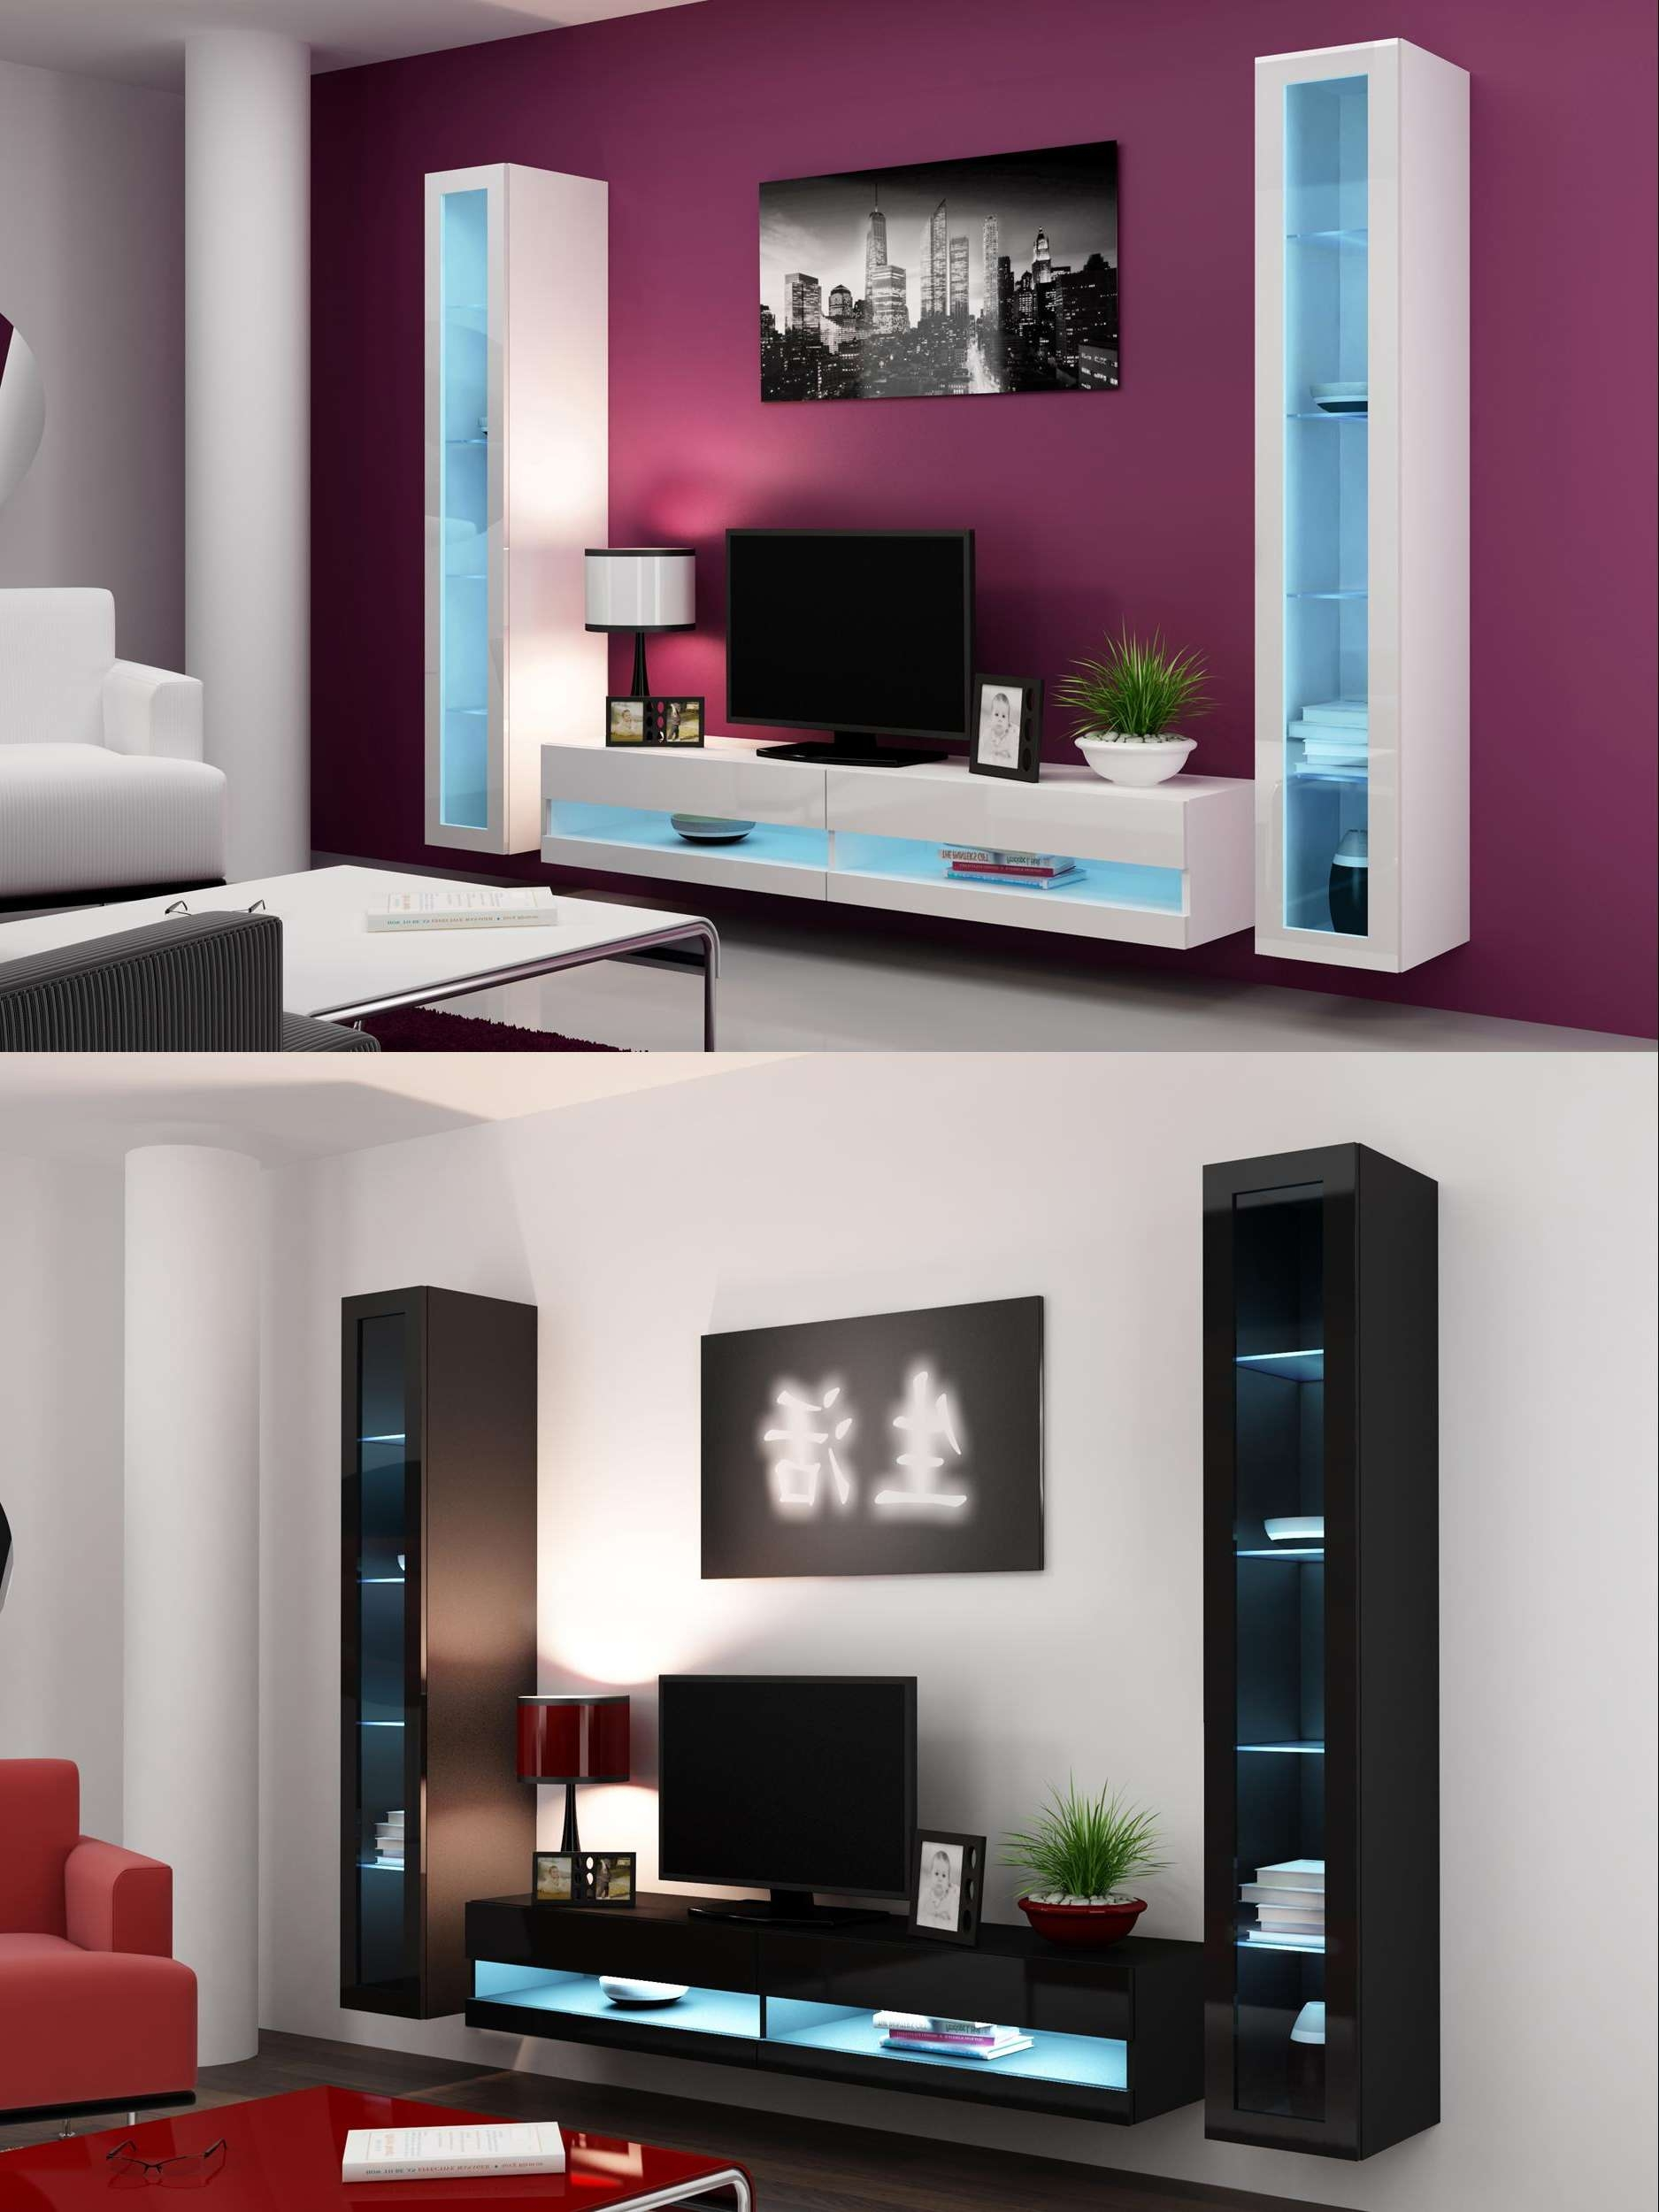 High Gloss Living Room Set With Led Lights, Tv Stand, Wall Mounted Pertaining To Wall Display Units And Tv Cabinets (View 2 of 20)